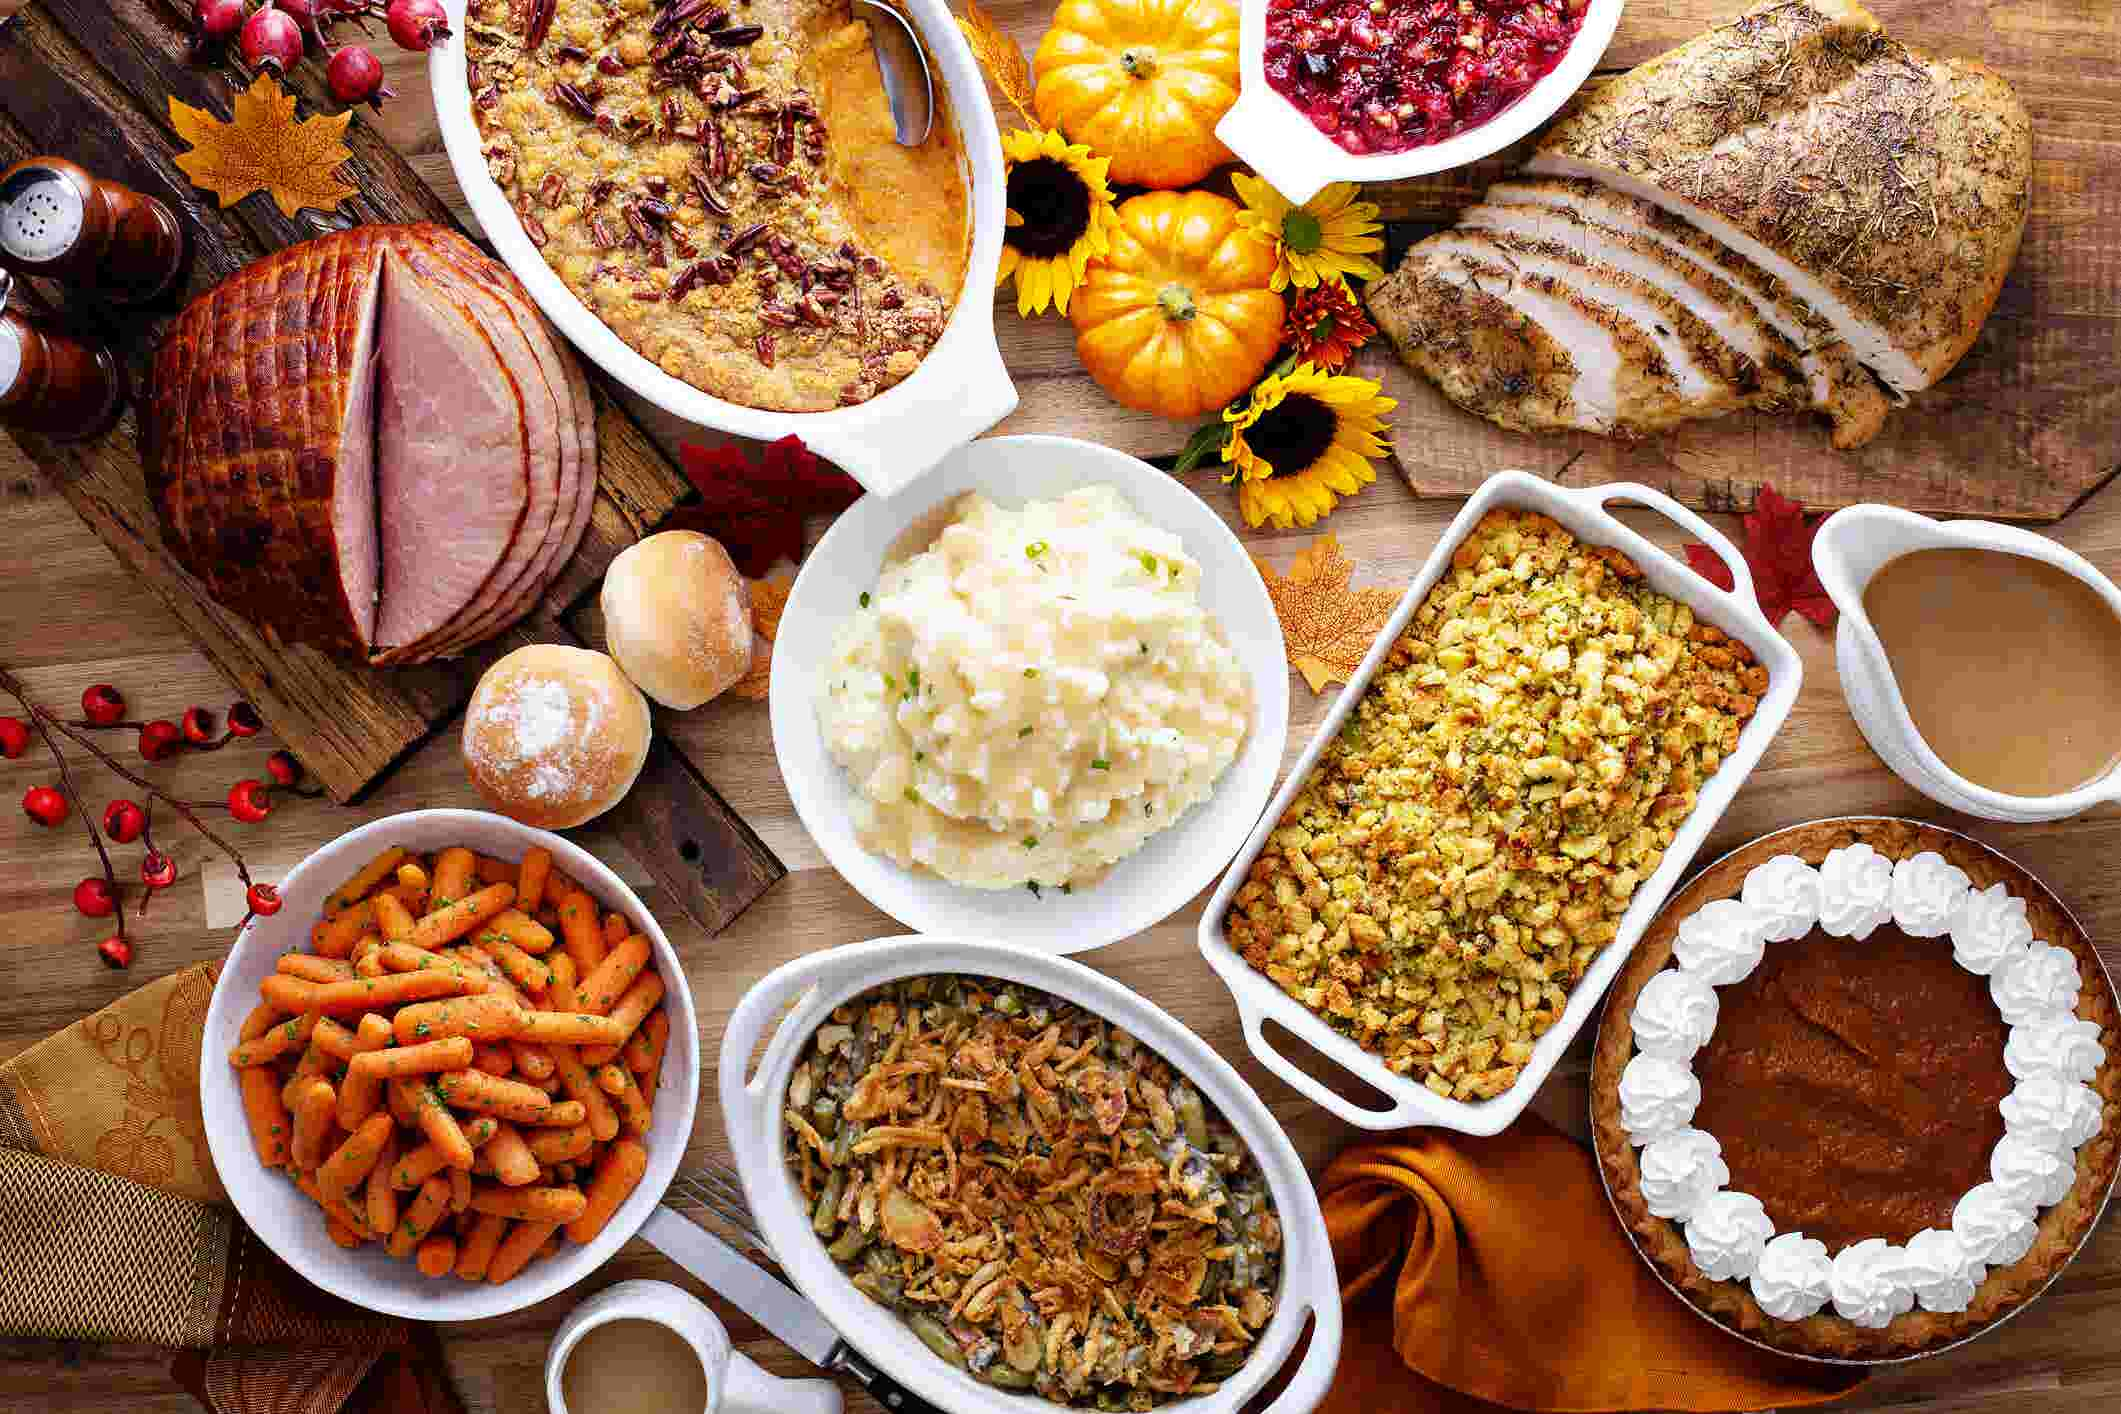 5 traditional Thanksgiving dishes Americans secretly hate